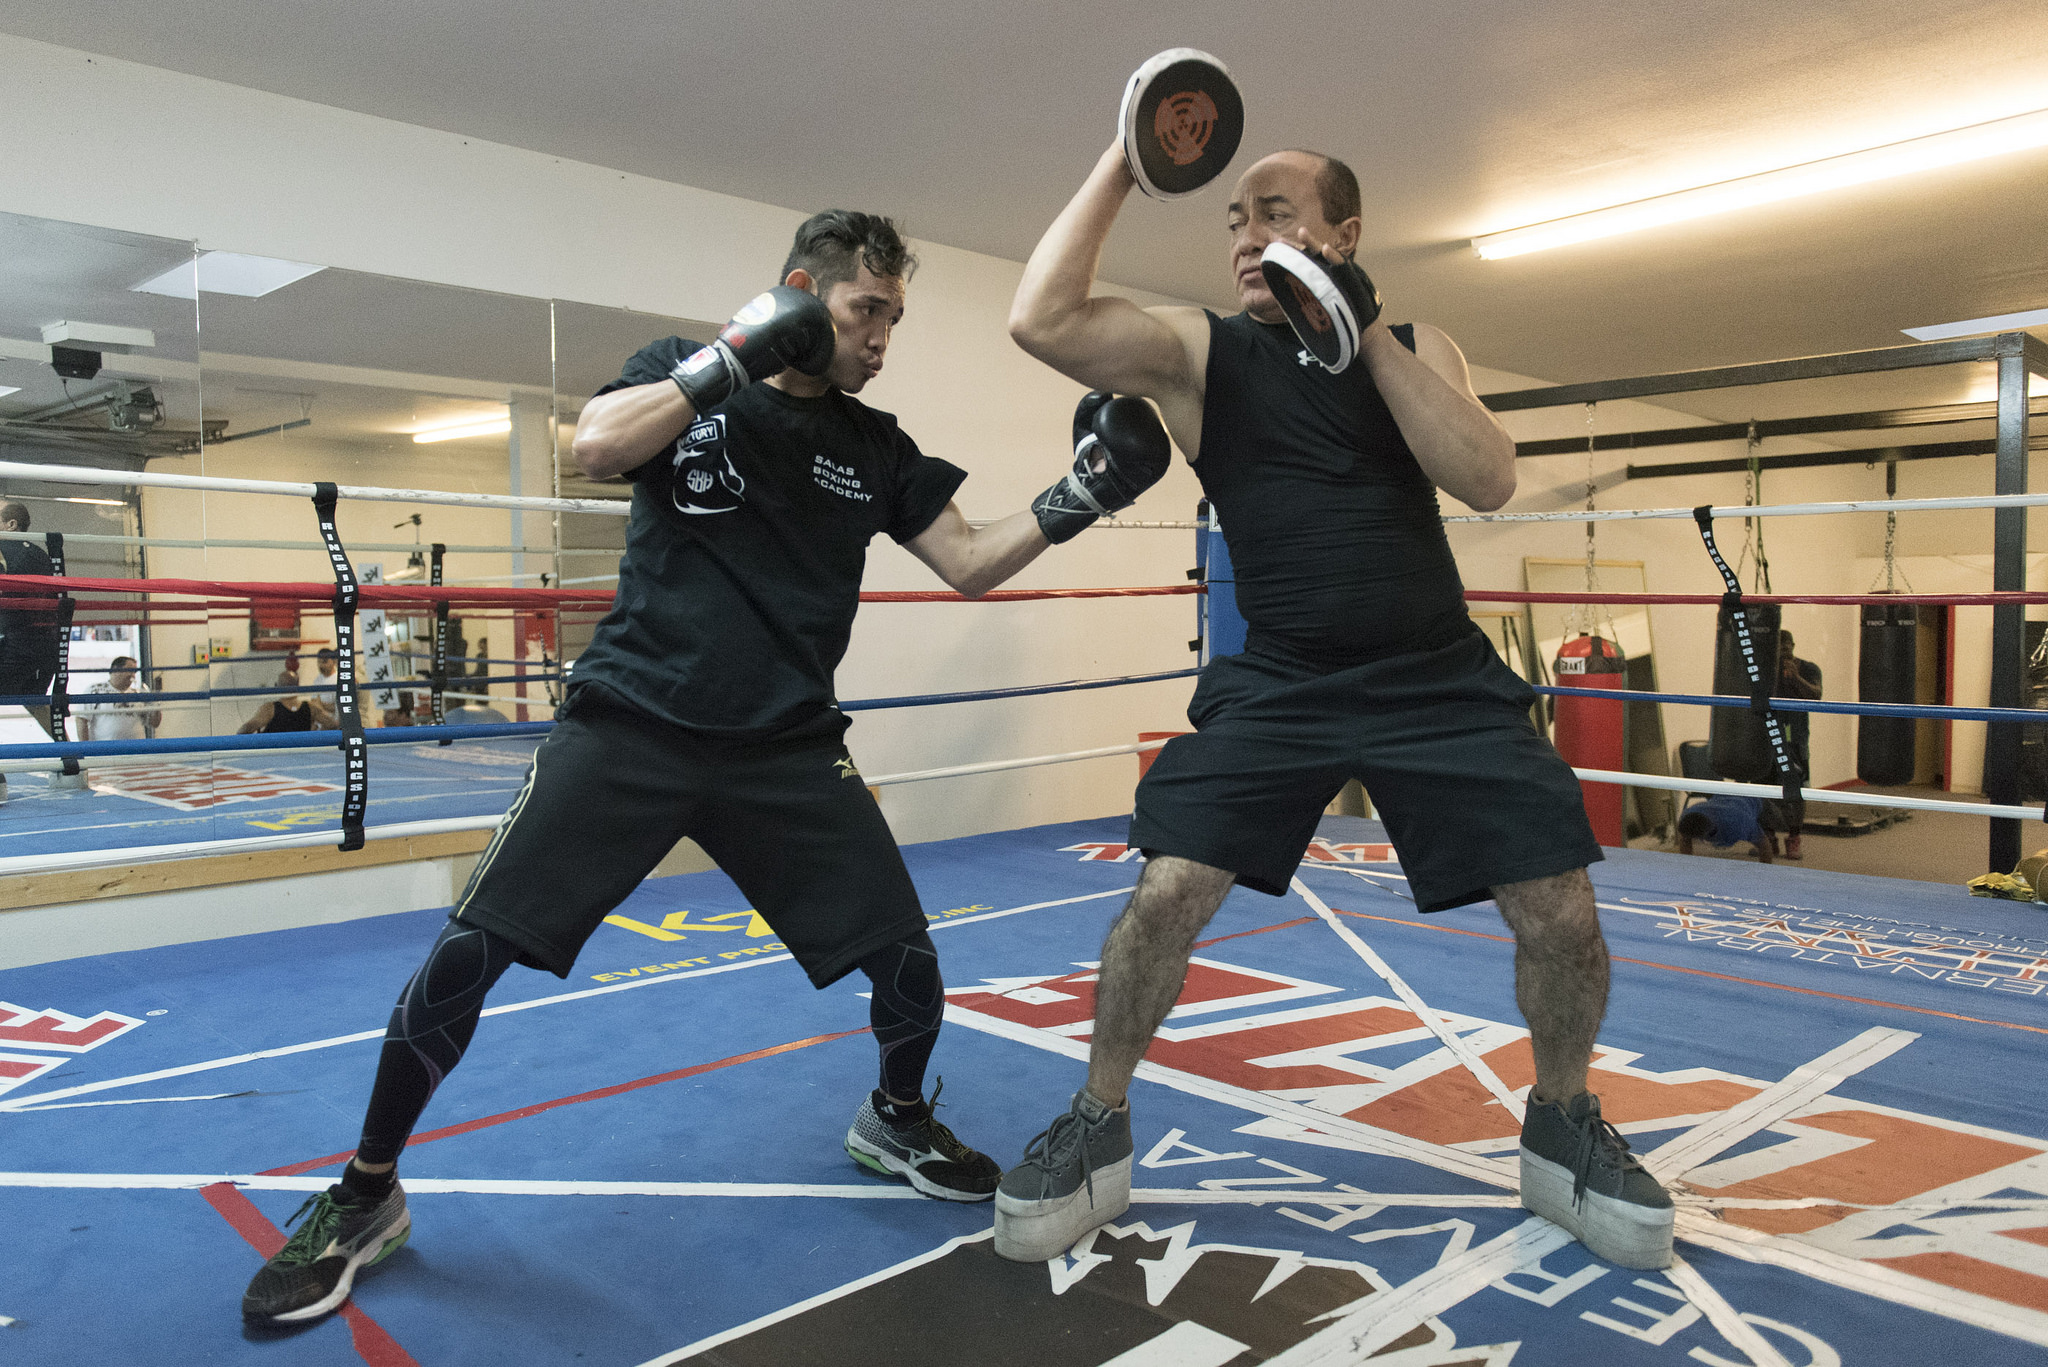 On Monday, Oct. 17, 2016 at Bones Adams Boxing Gym in Las Vegas, Nonito Donaire, left, trains with Ismael Salas to defend Donaire's Super Bantamweight title against Jessie Magdaleno at his Nov. 5 fight at the Thomas & Mack Center. Jason Ogulnik/Las Vegas Review-Journal